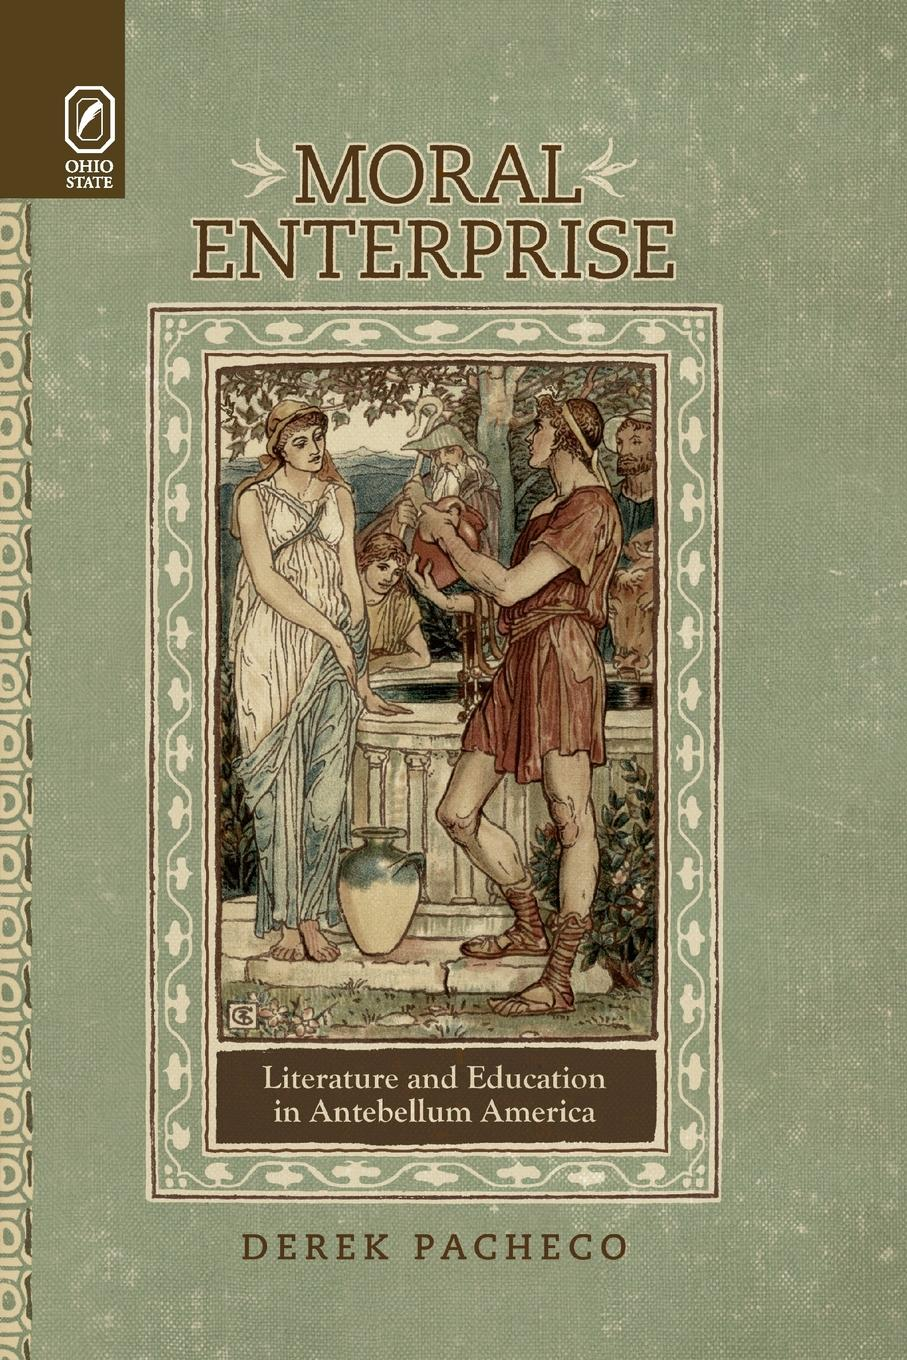 цена Derek Pacheco Moral Enterprise. Literature and Education in Antebellum America онлайн в 2017 году